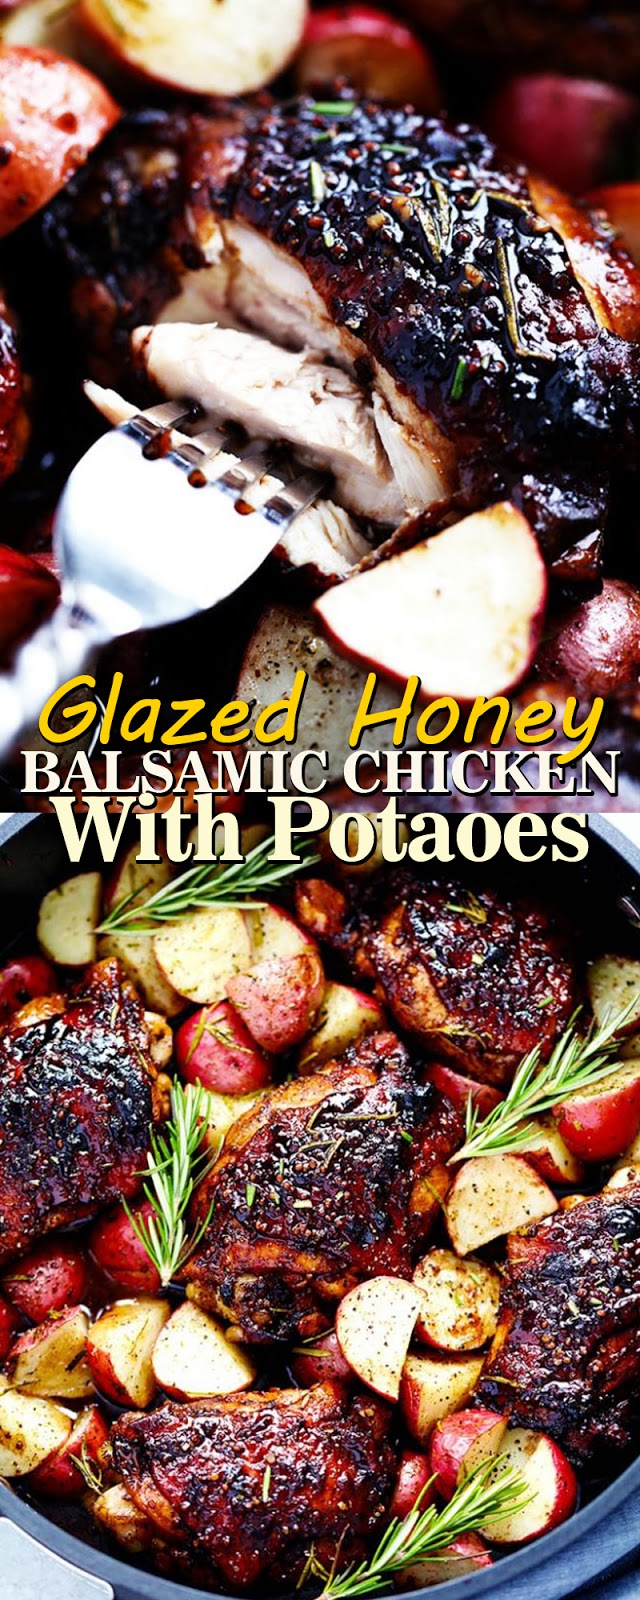 GLAZED HONEY BALSAMIC CHICKEN WITH POTATOES